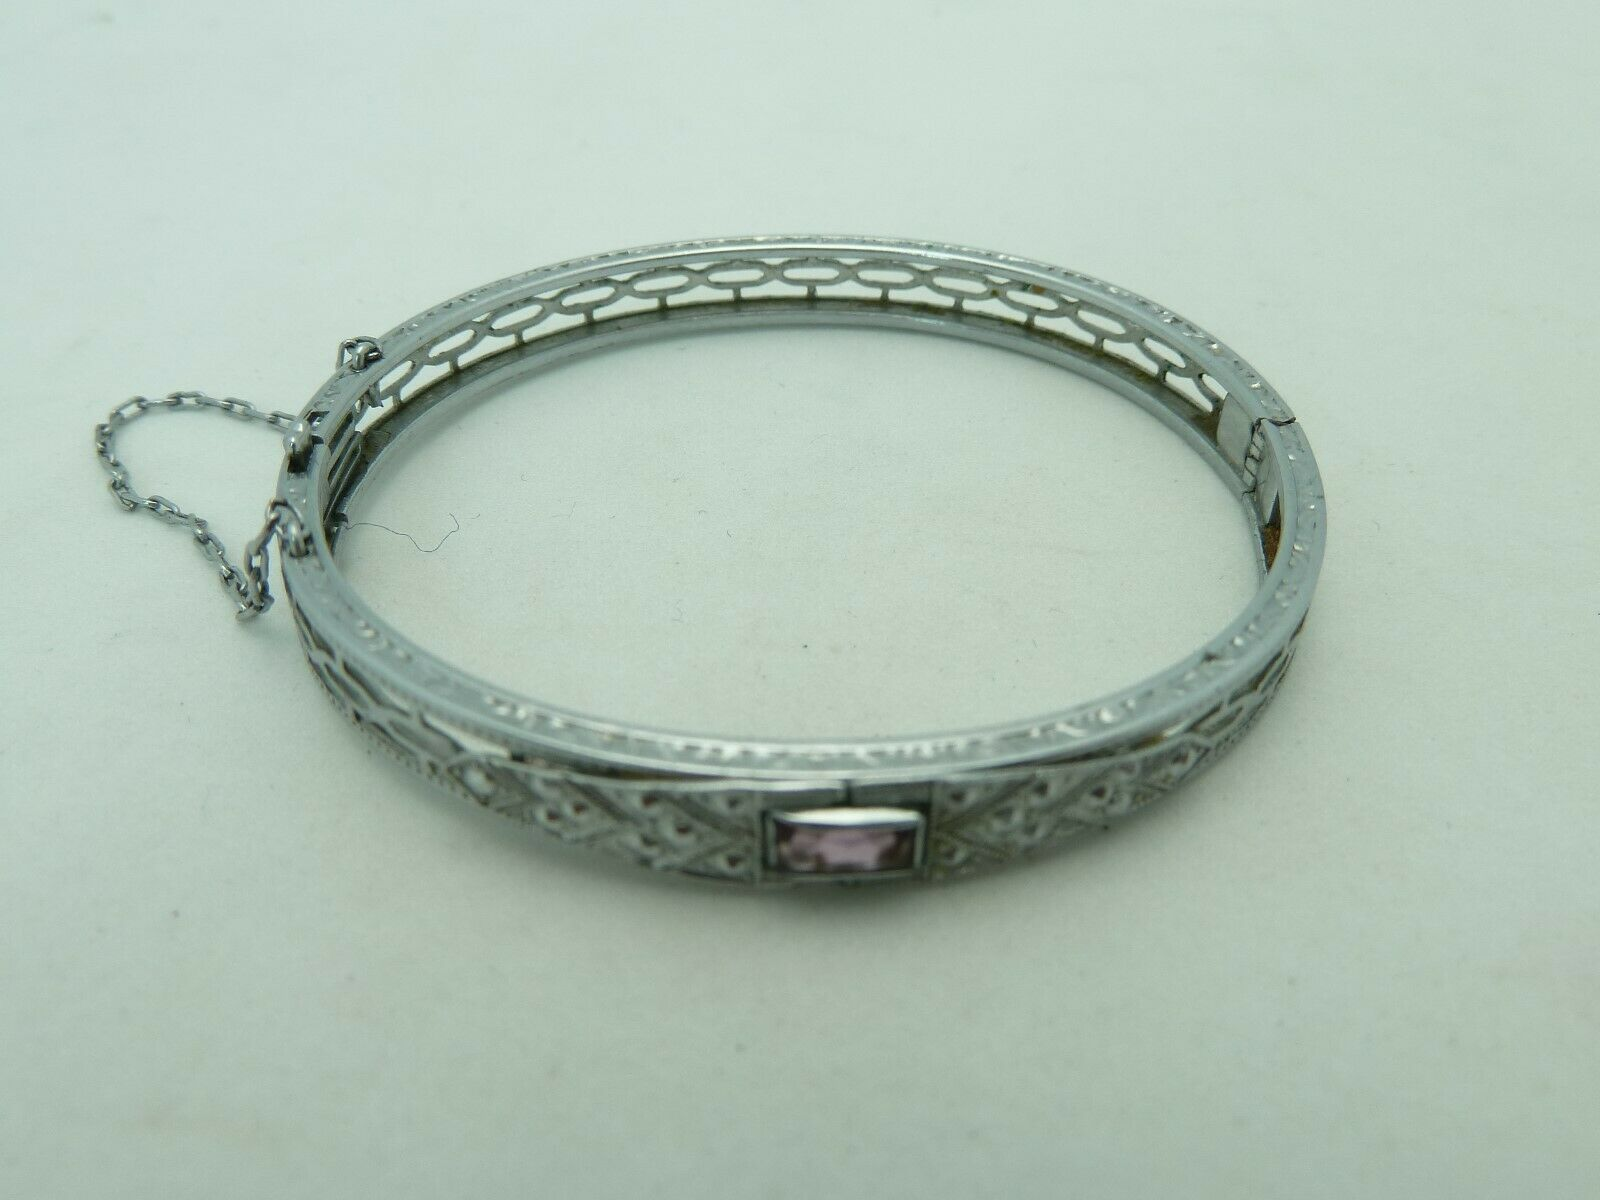 D2 Vintage Art Deco R and G Co NuWite Childs Filigree Metal Bracelet with Rosy Deep Pink Cut Glass Stone Saftey Chain Needs to be Repaired